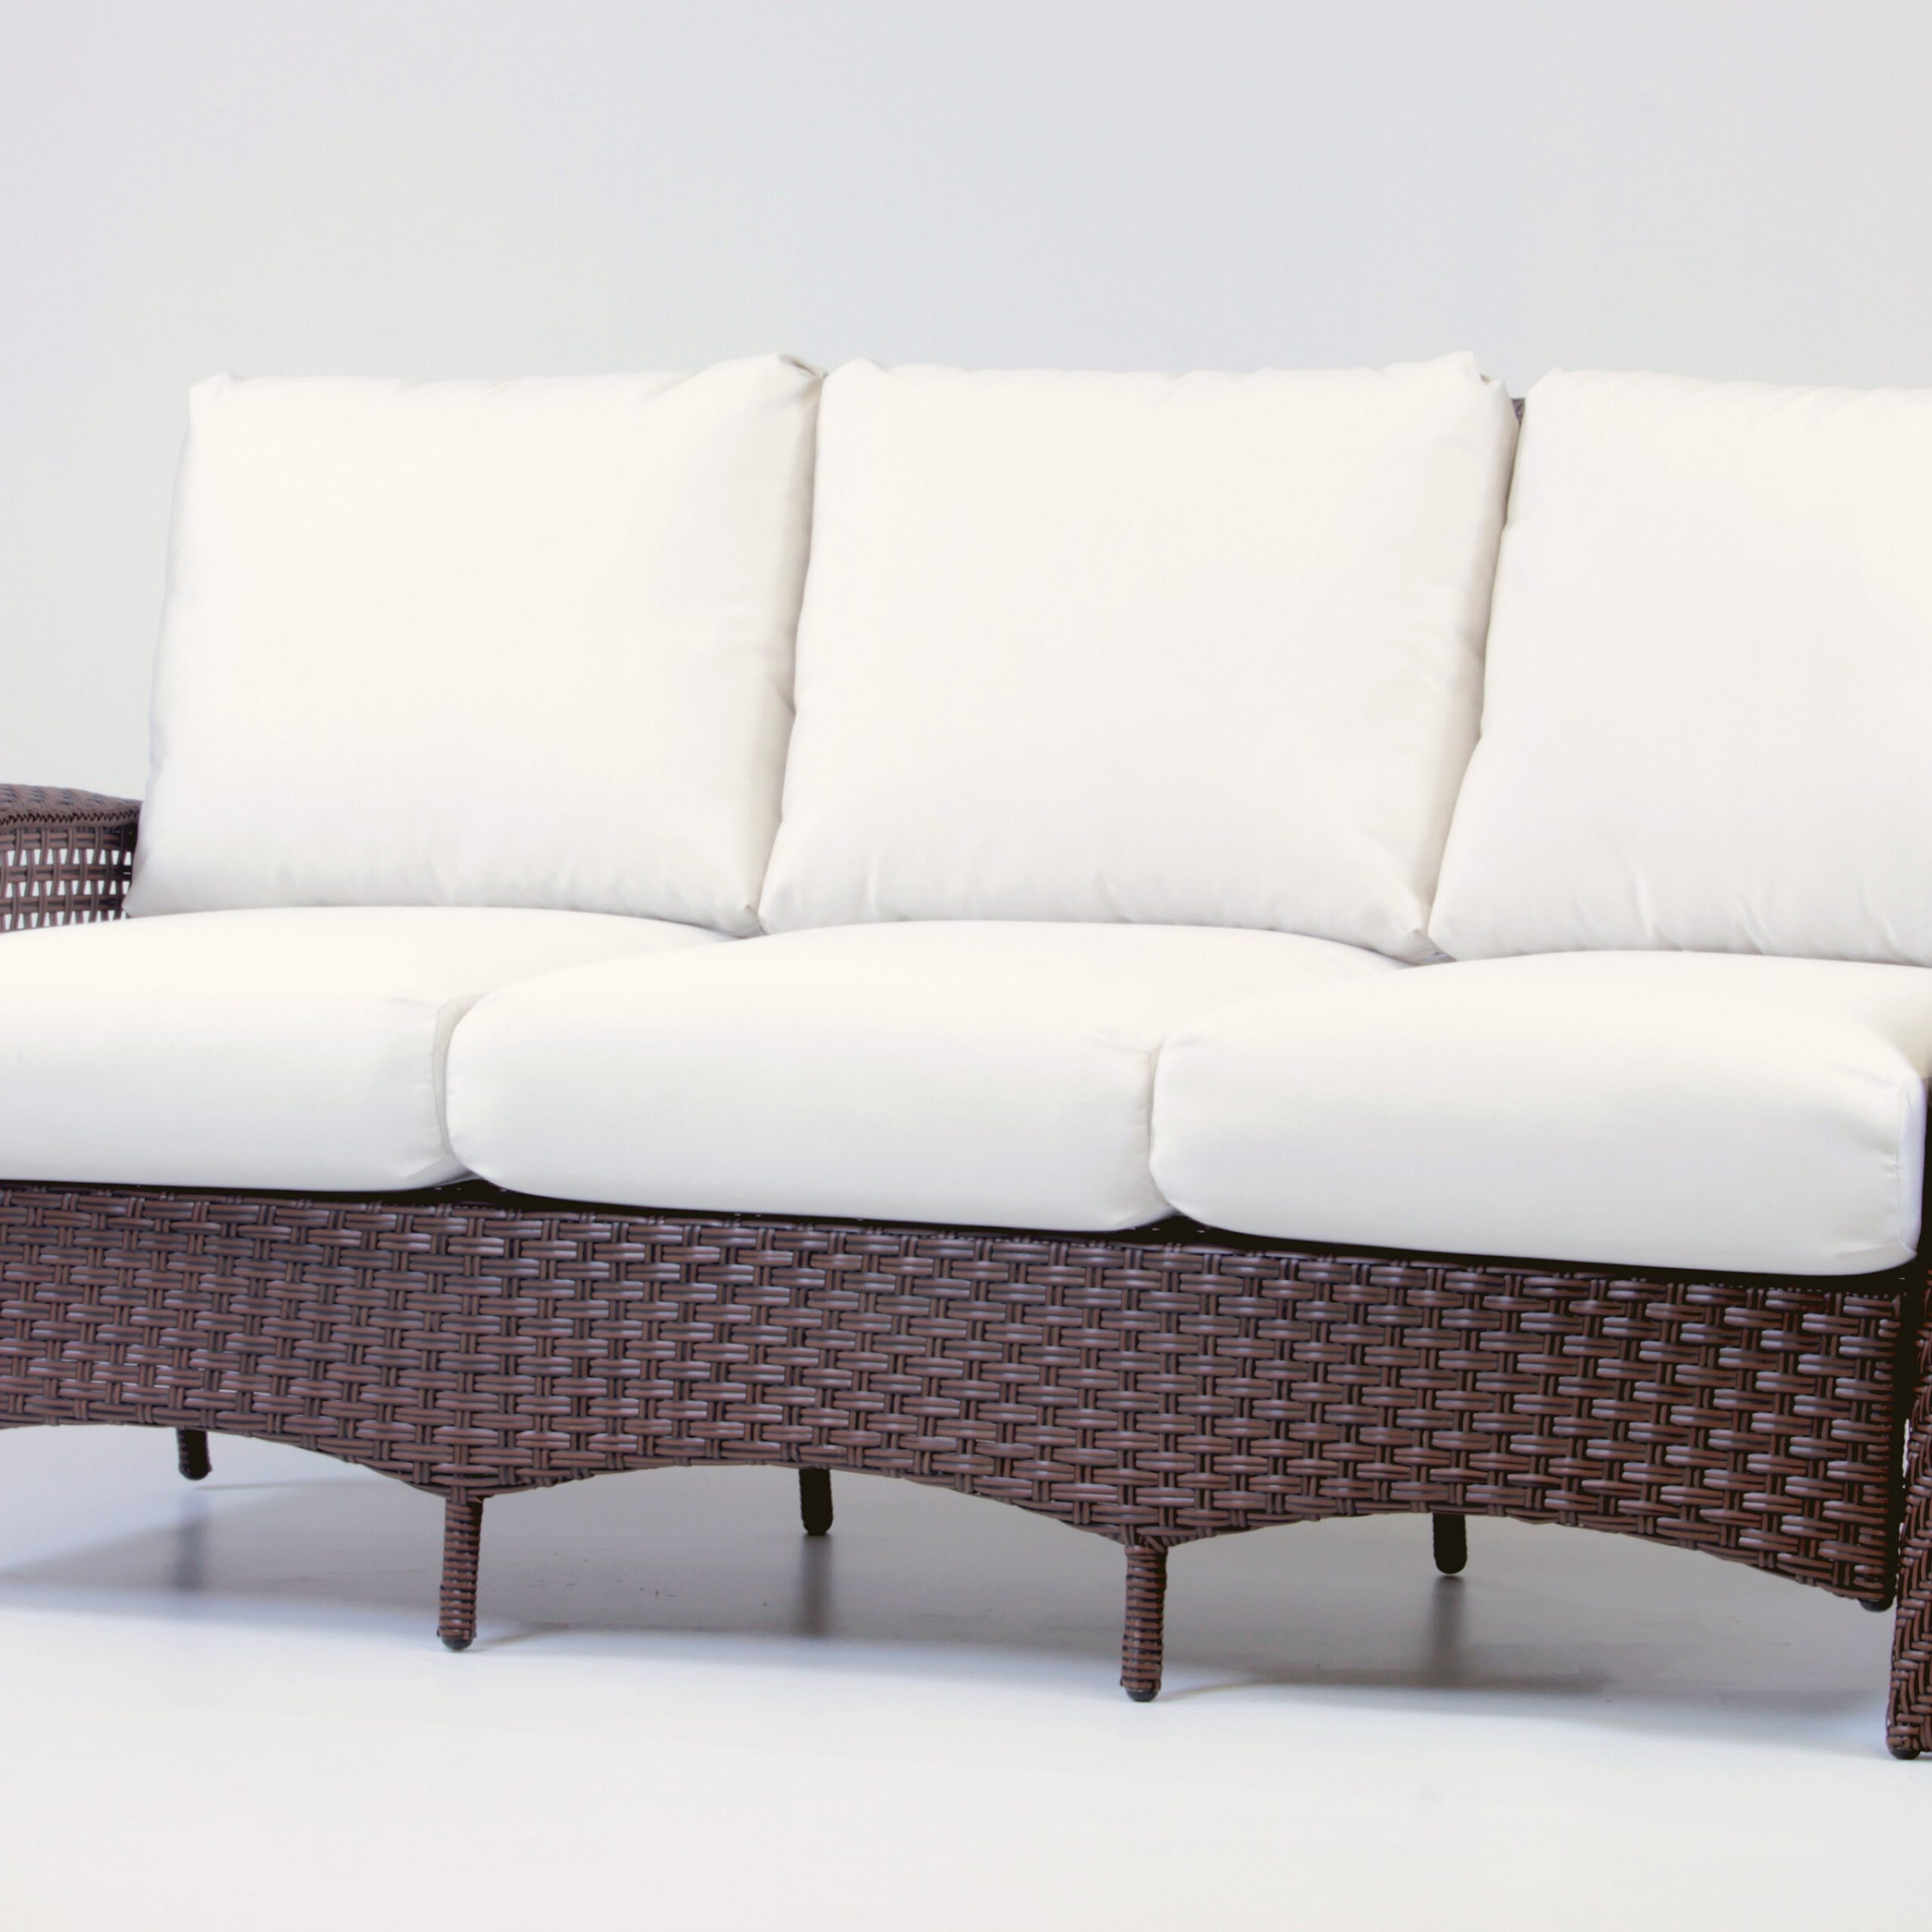 Popular Fannin Patio Sofas With Cushions Throughout Allerdale Sofa With Cushion (Gallery 10 of 25)